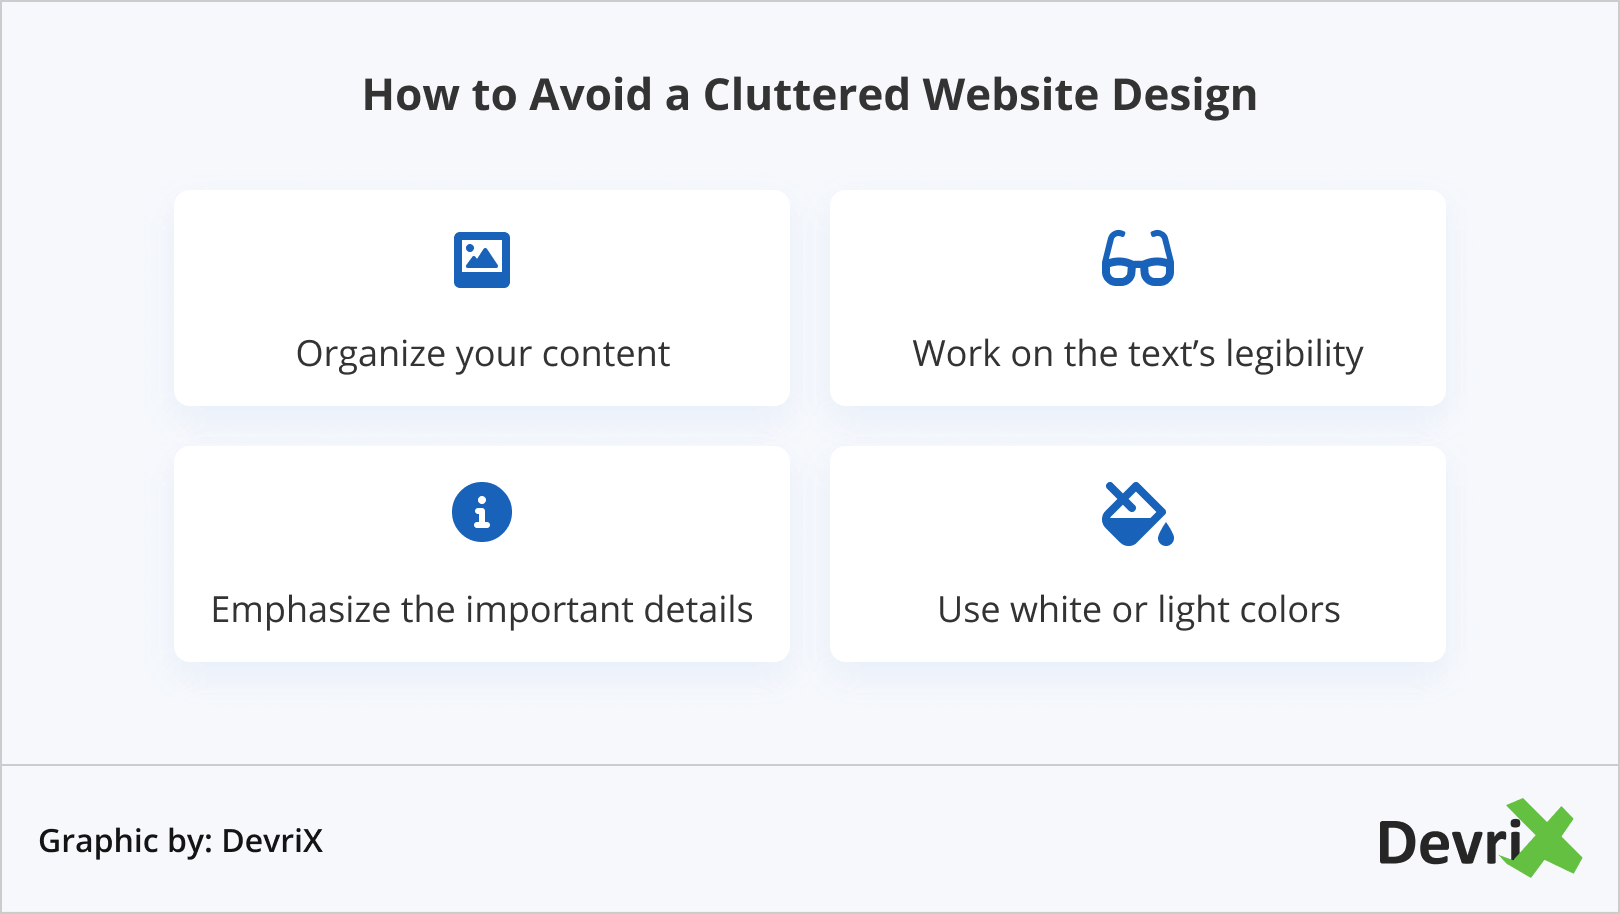 How to Avoid a Cluttered Website Design